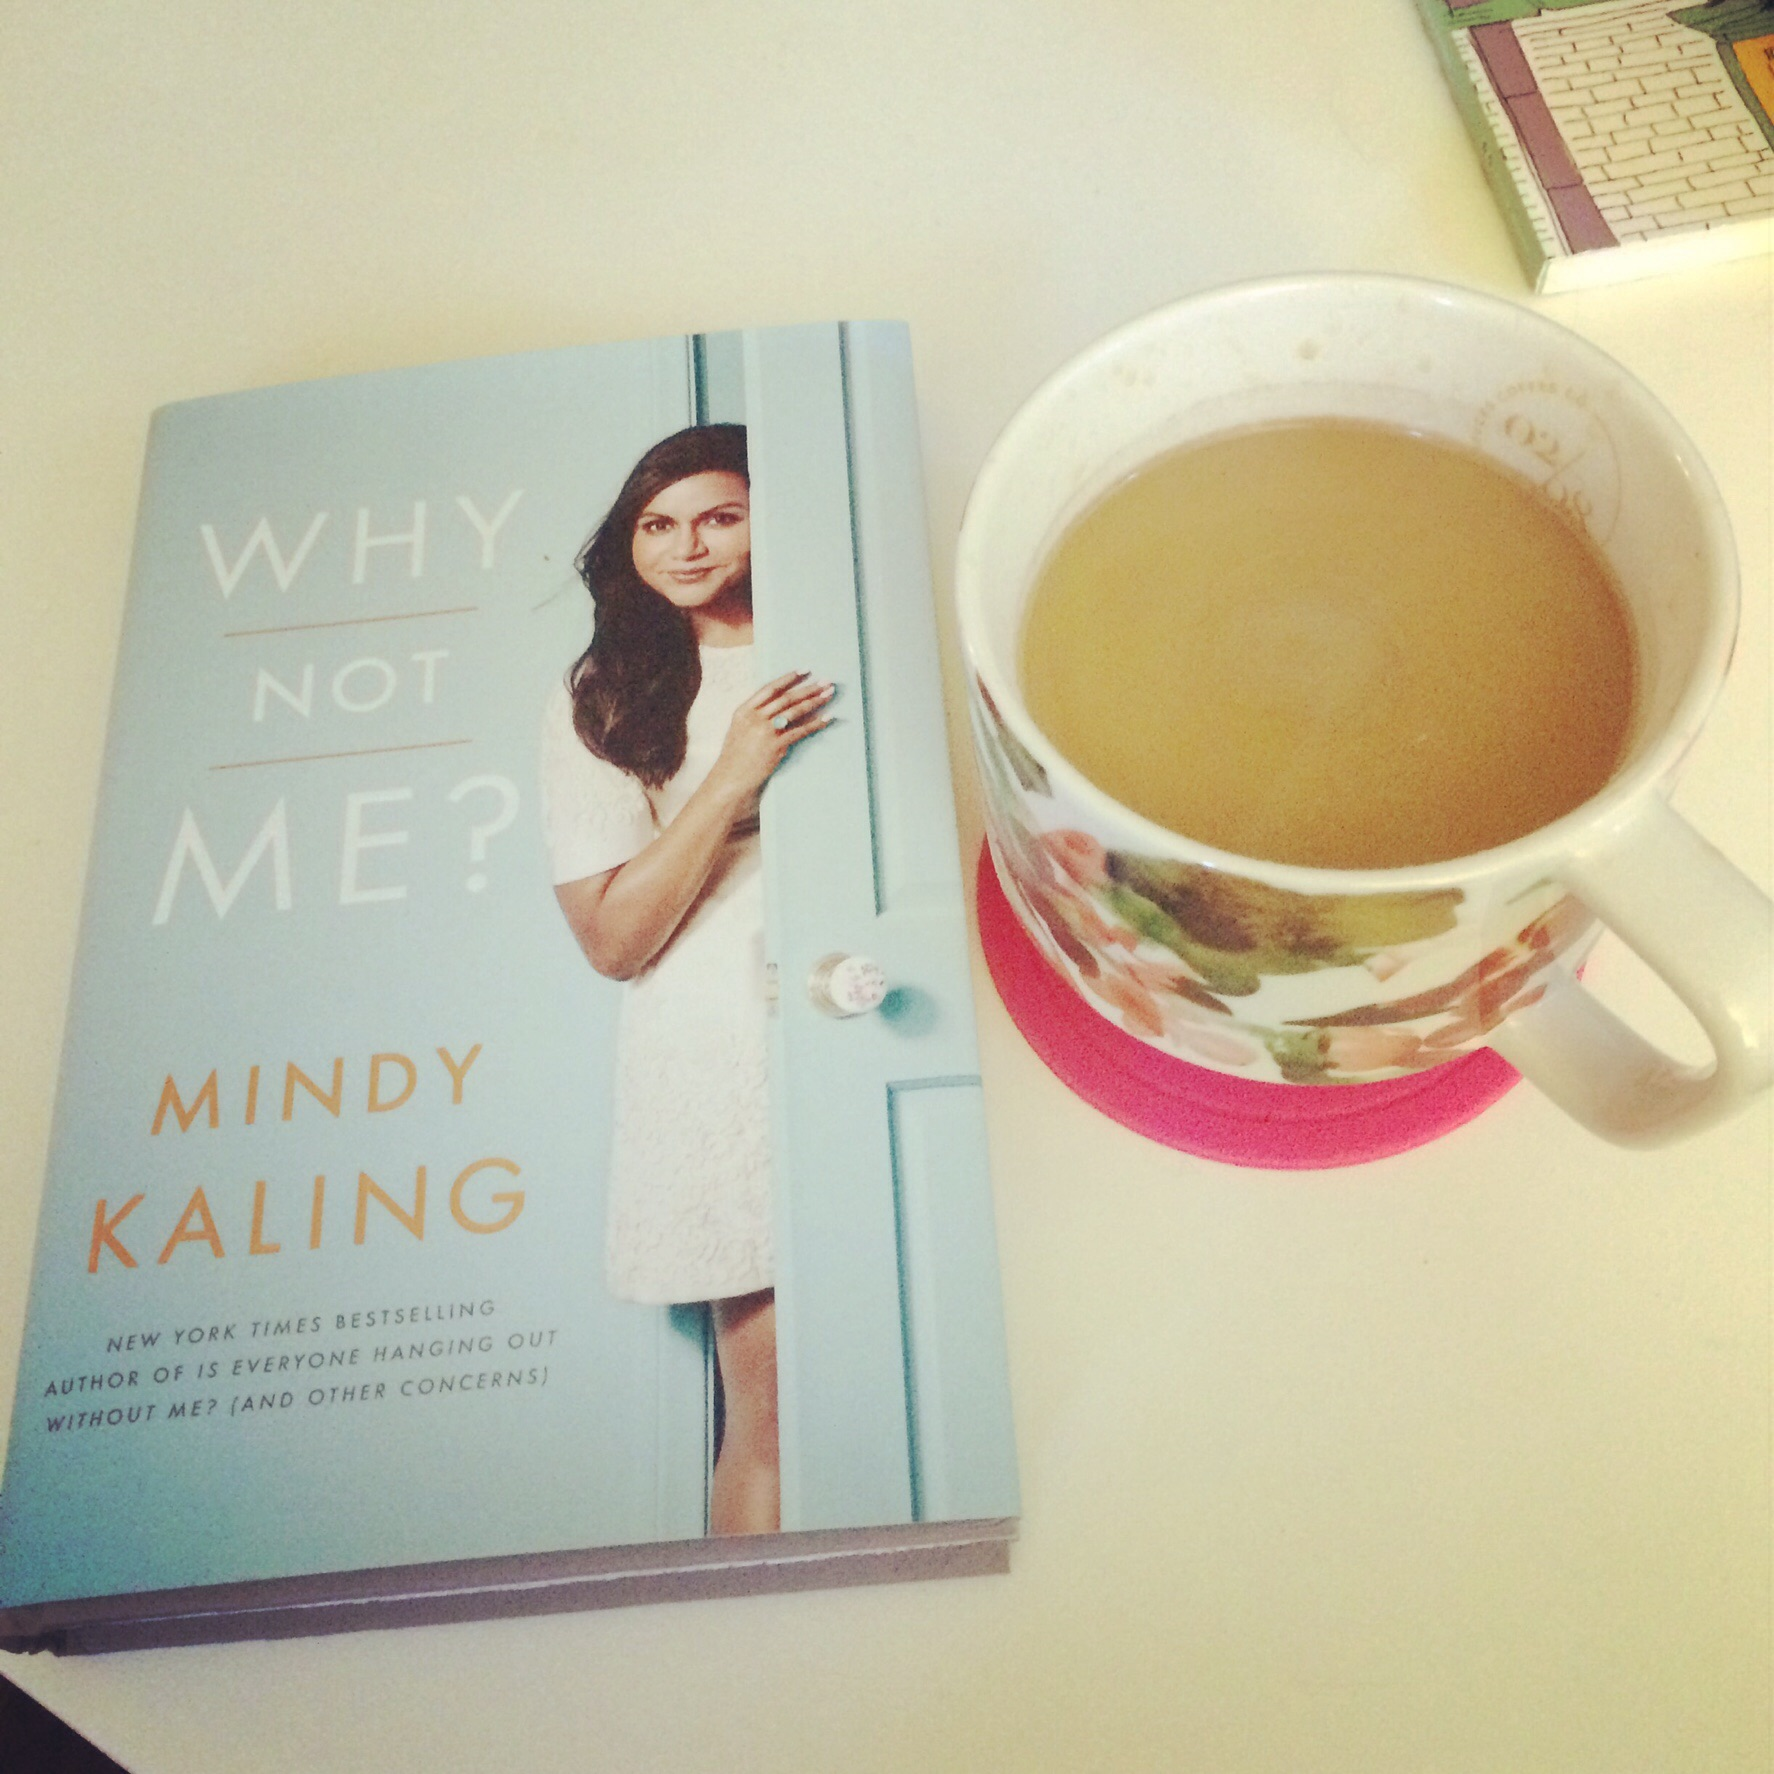 Life Love And The Meaning Of Bookworm Why Not Me By Mindy Kaling